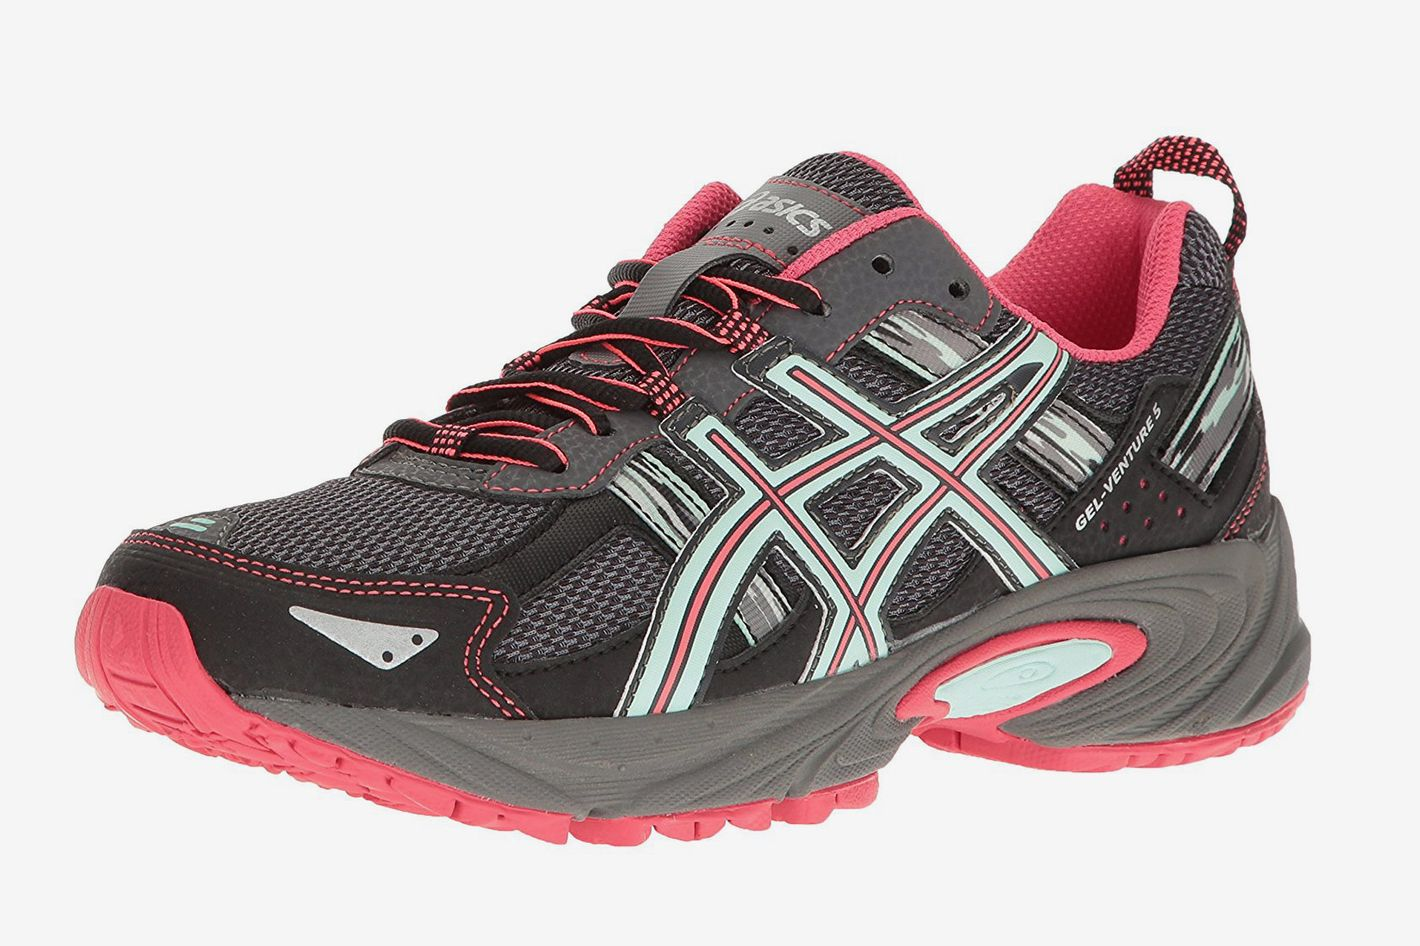 ASICS Women s GEL-Venture 5 Running Shoe e158d22eb